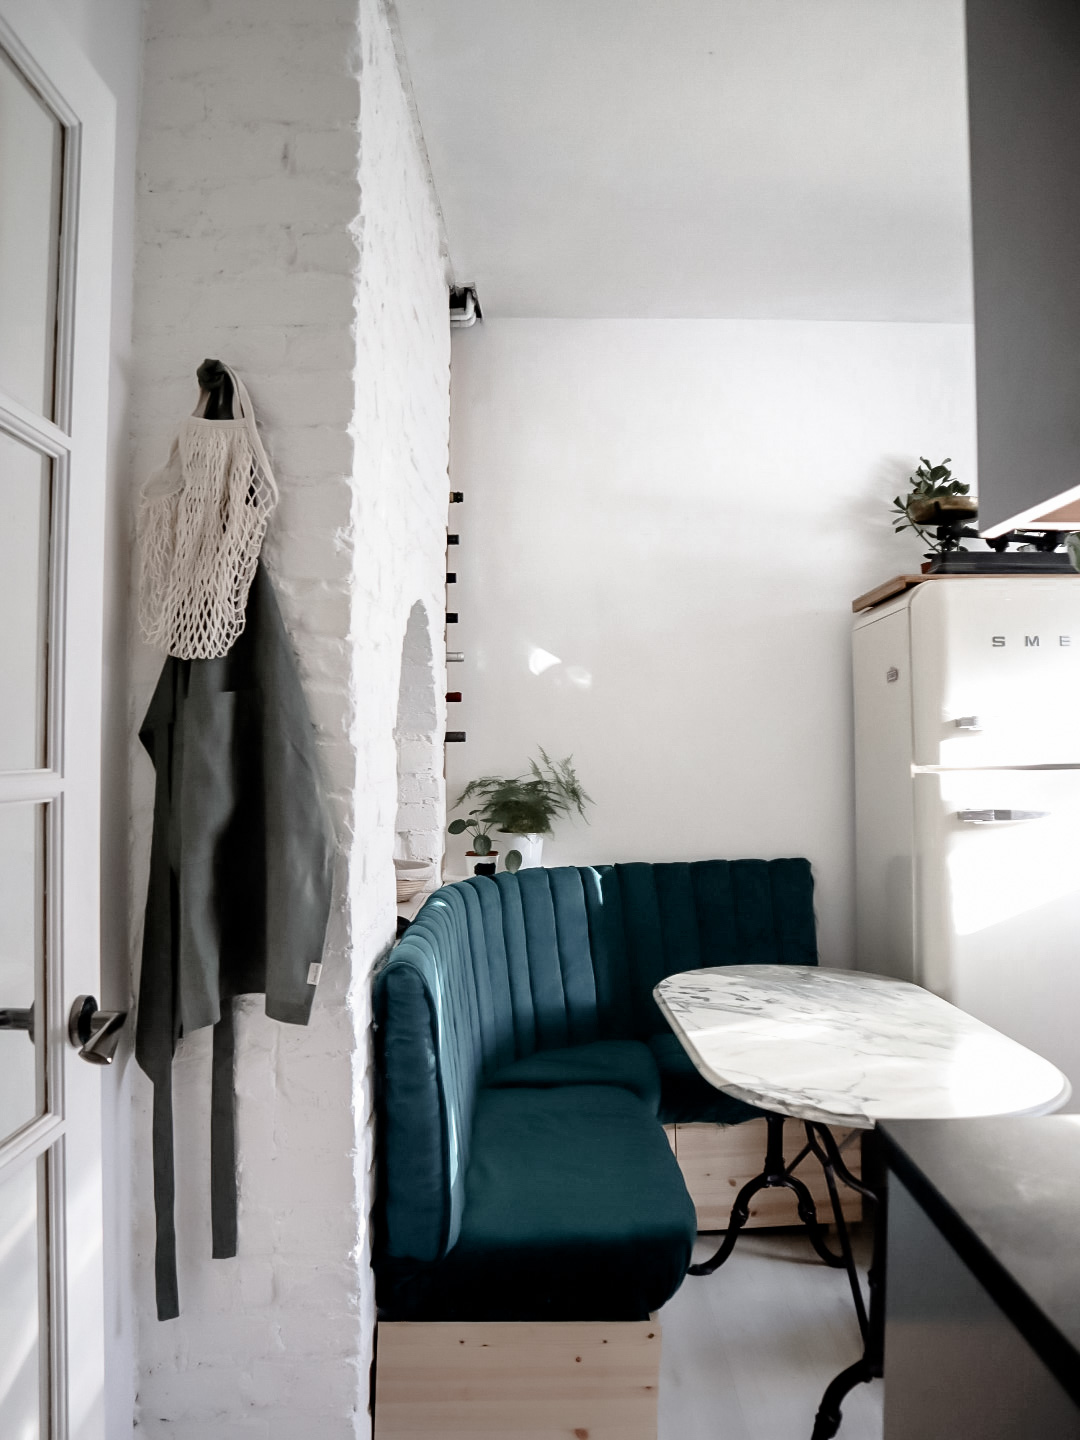 How To Build A Kitchen Paneled Booth With Storage